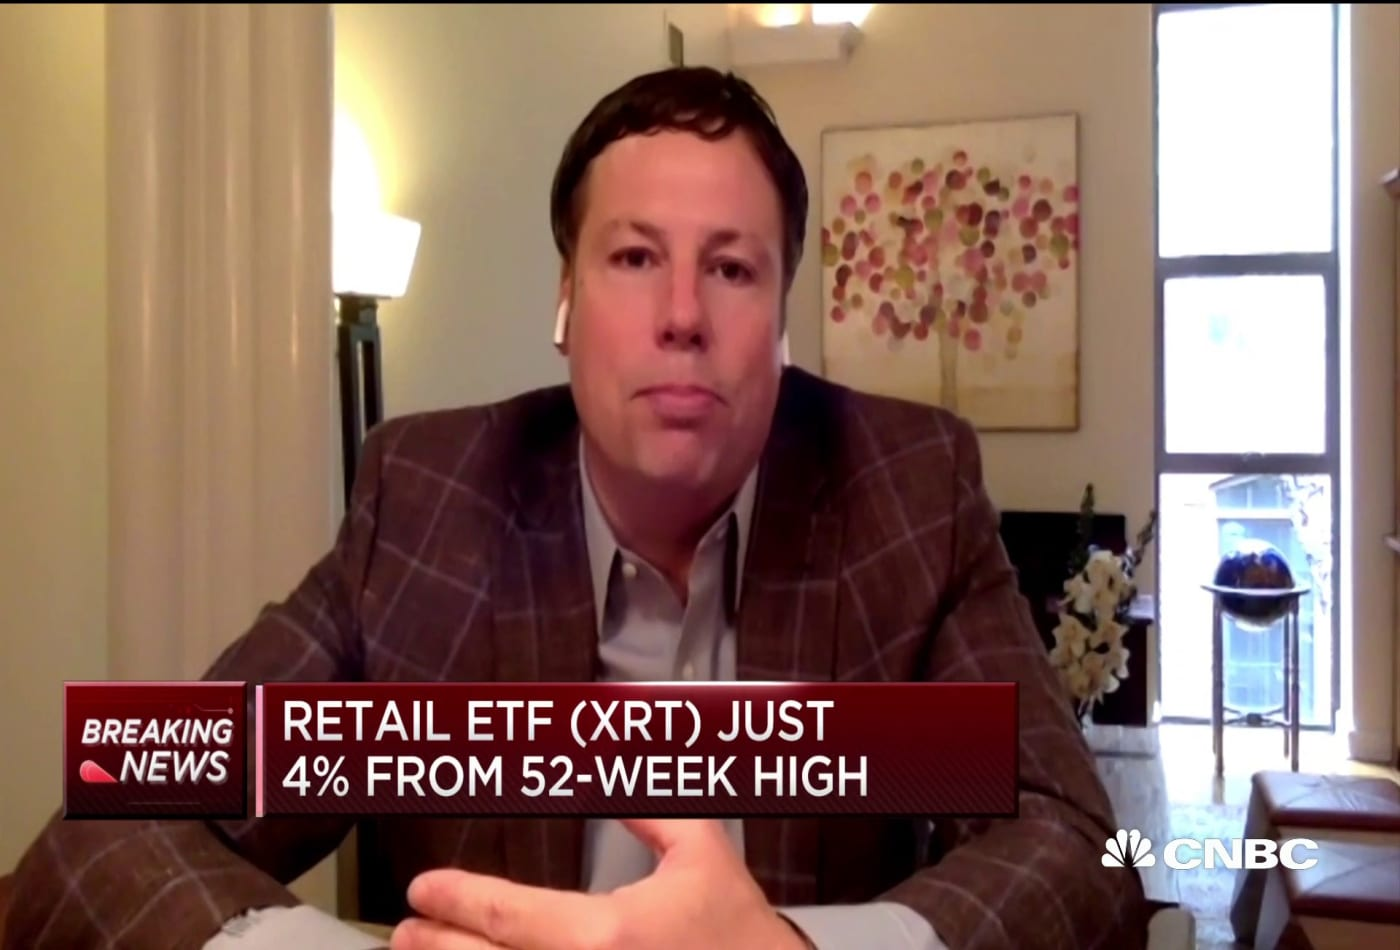 Permanent changes to way consumers behave and spend': Retail analyst